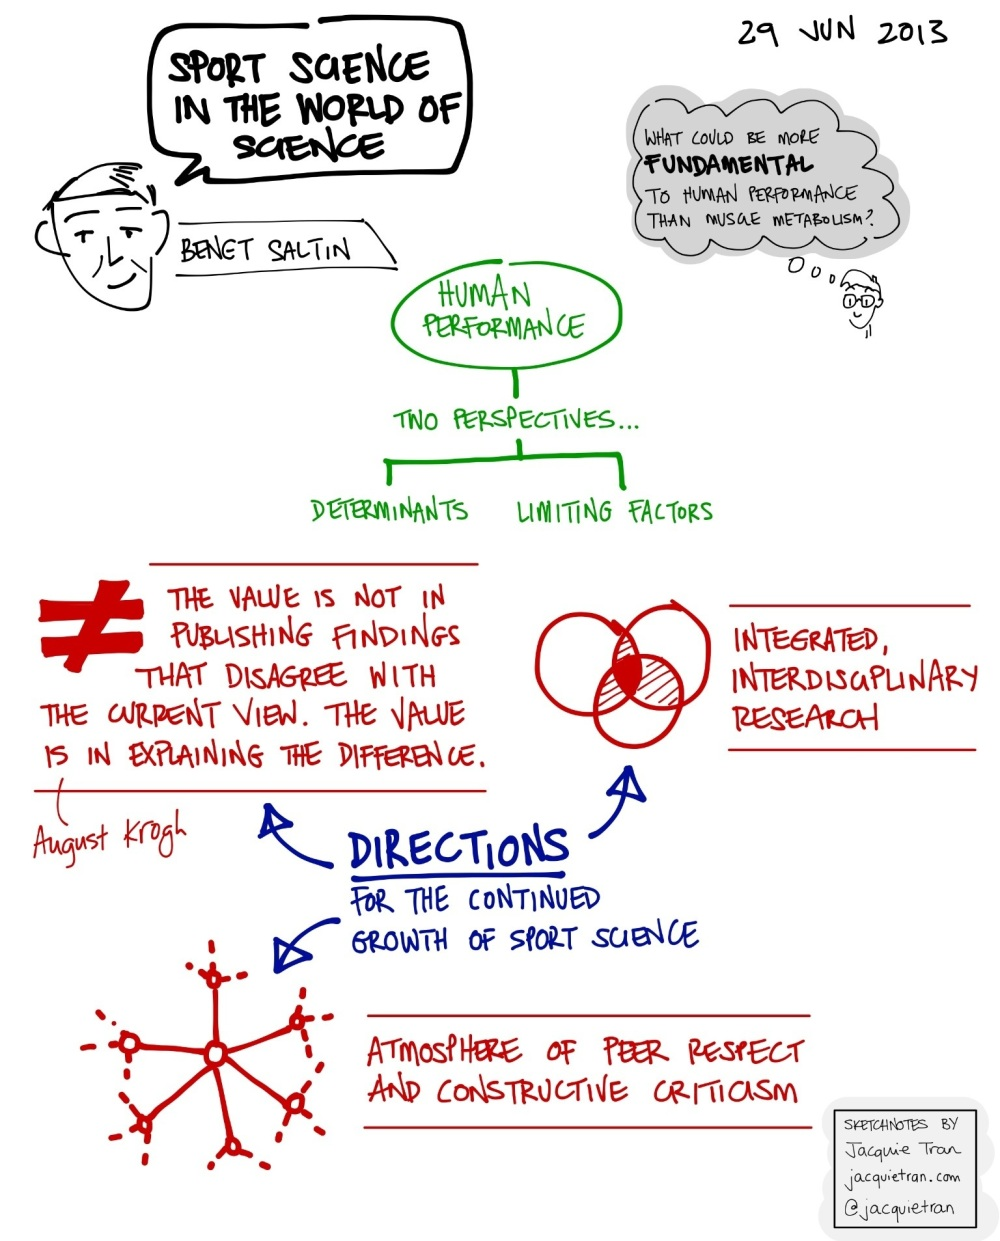 Bengt Saltin - Sports Science in the World of Science | European College of Sports Science Congress 2013 - Sketchnotes by Jacquie Tran